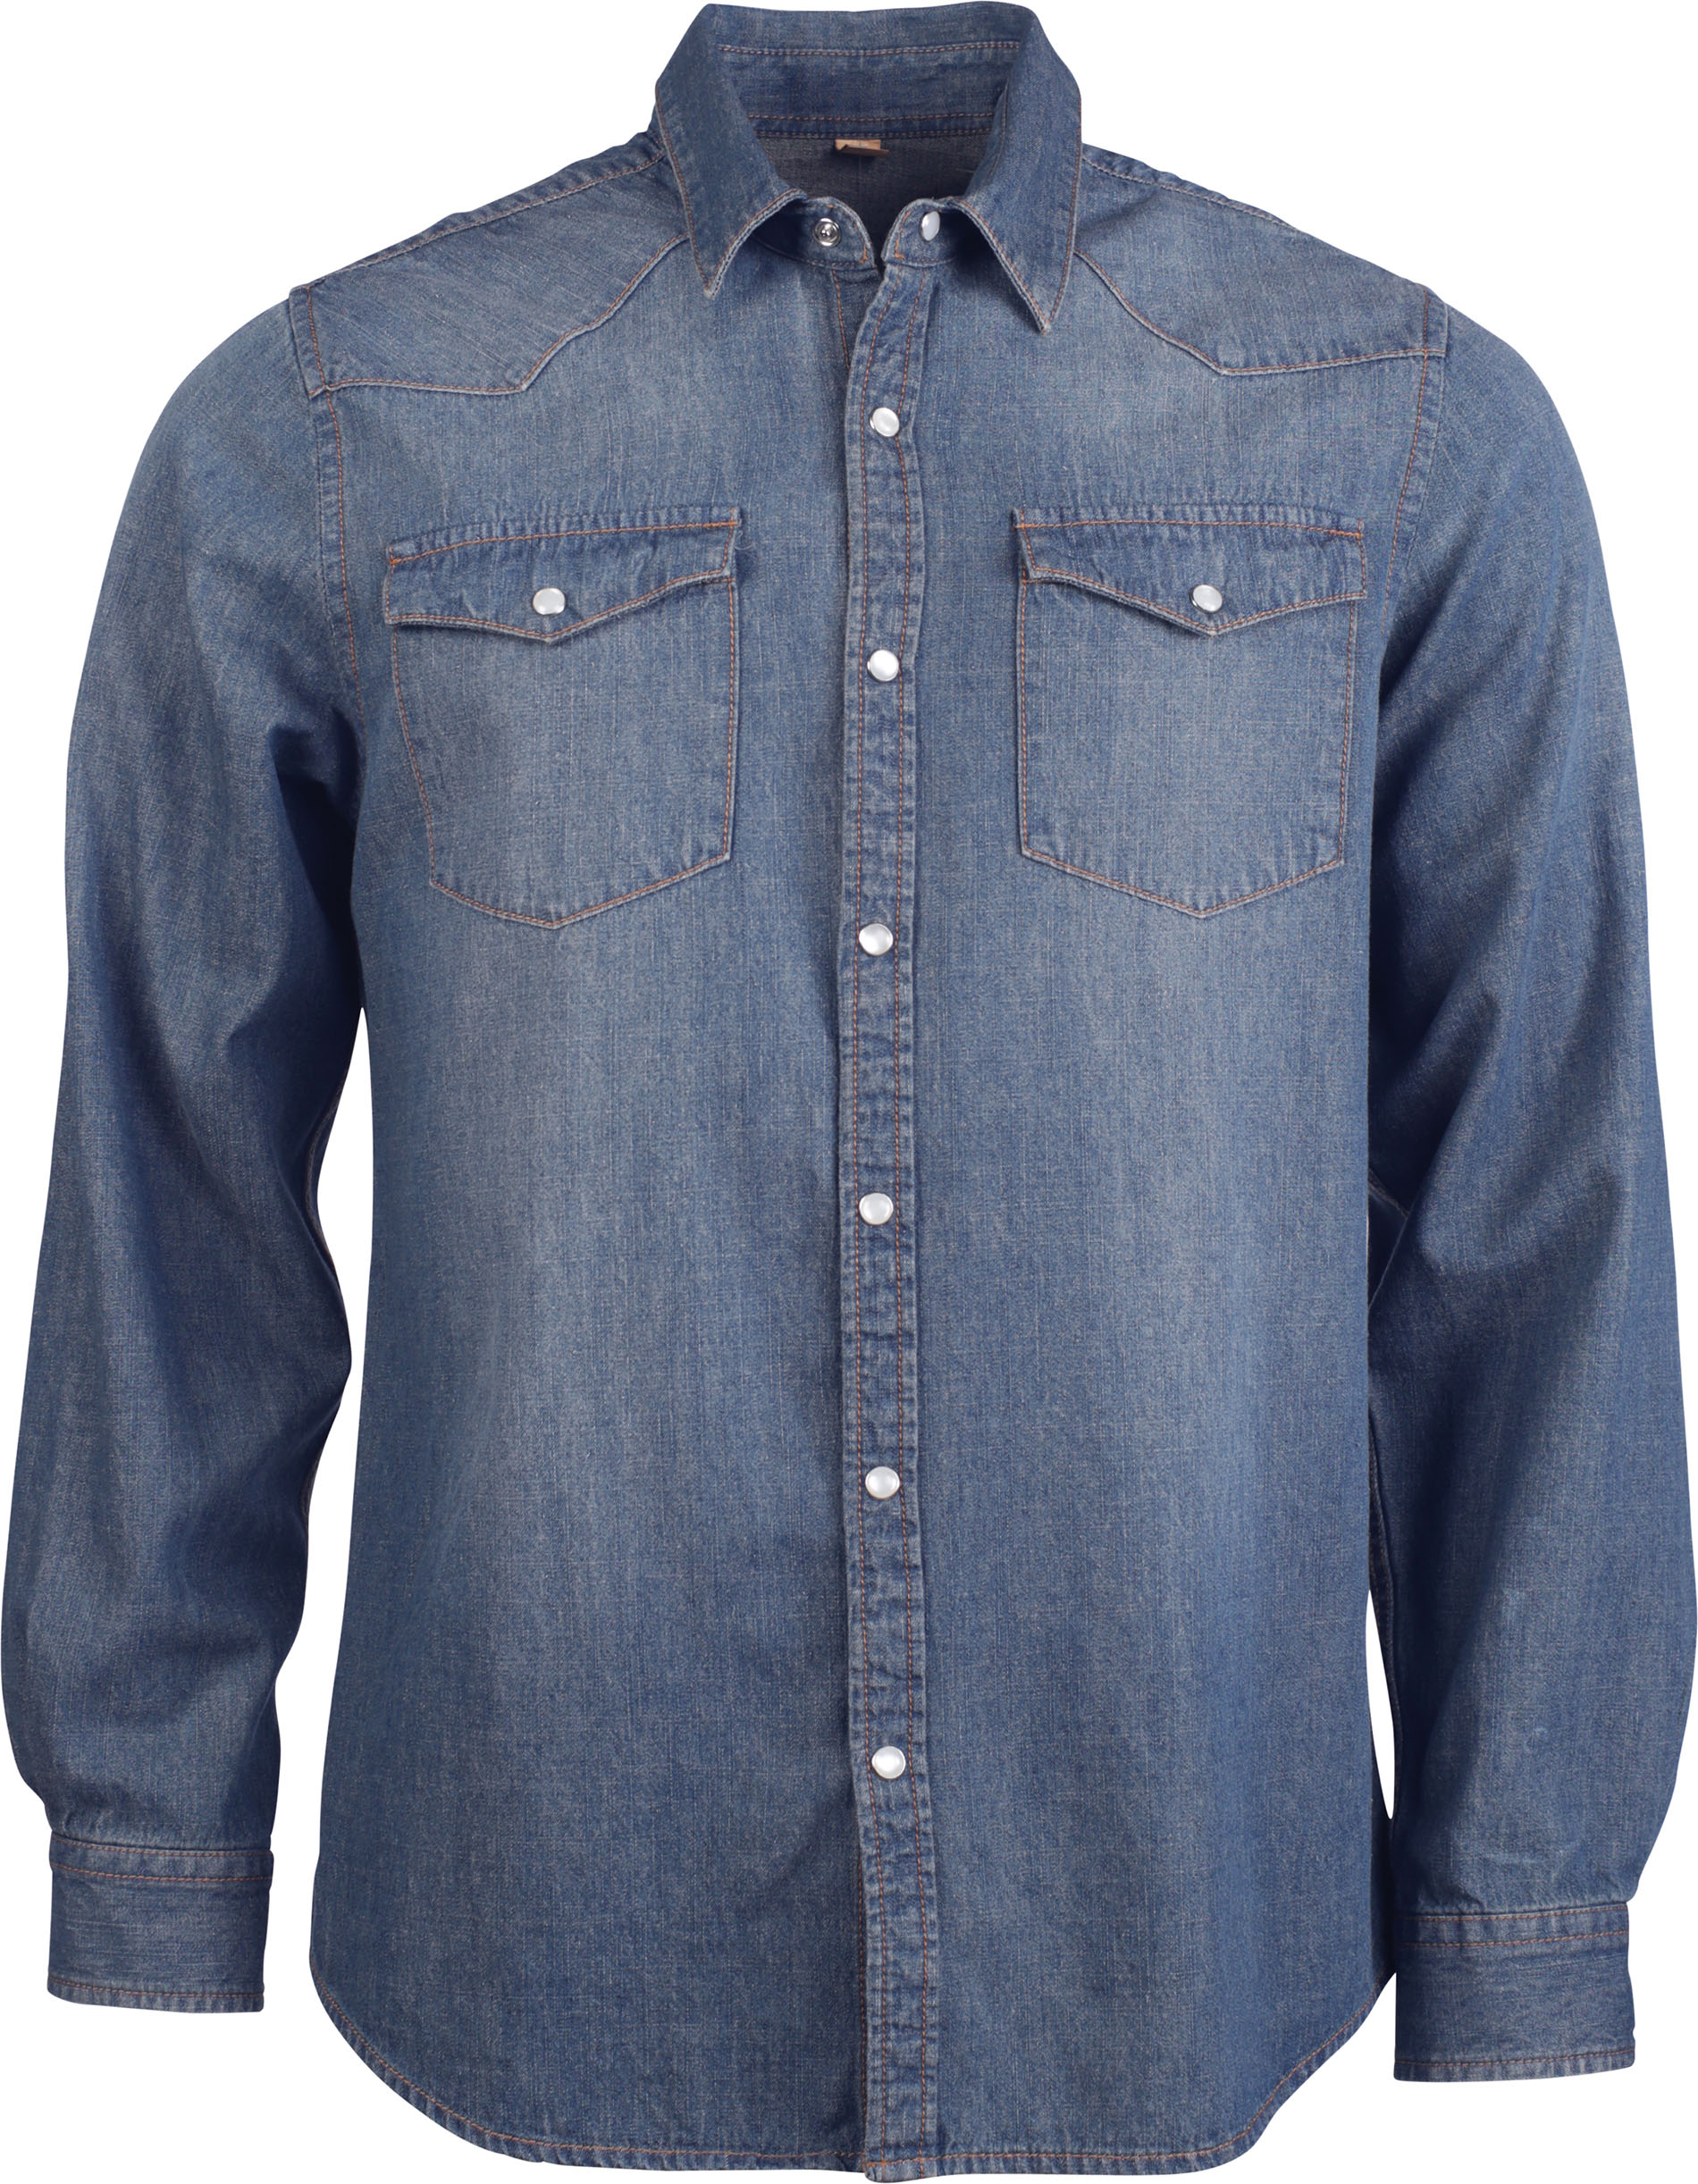 Denim Overhemd Heren.Heren Denim Overhemd Lange Mouwen Publi All